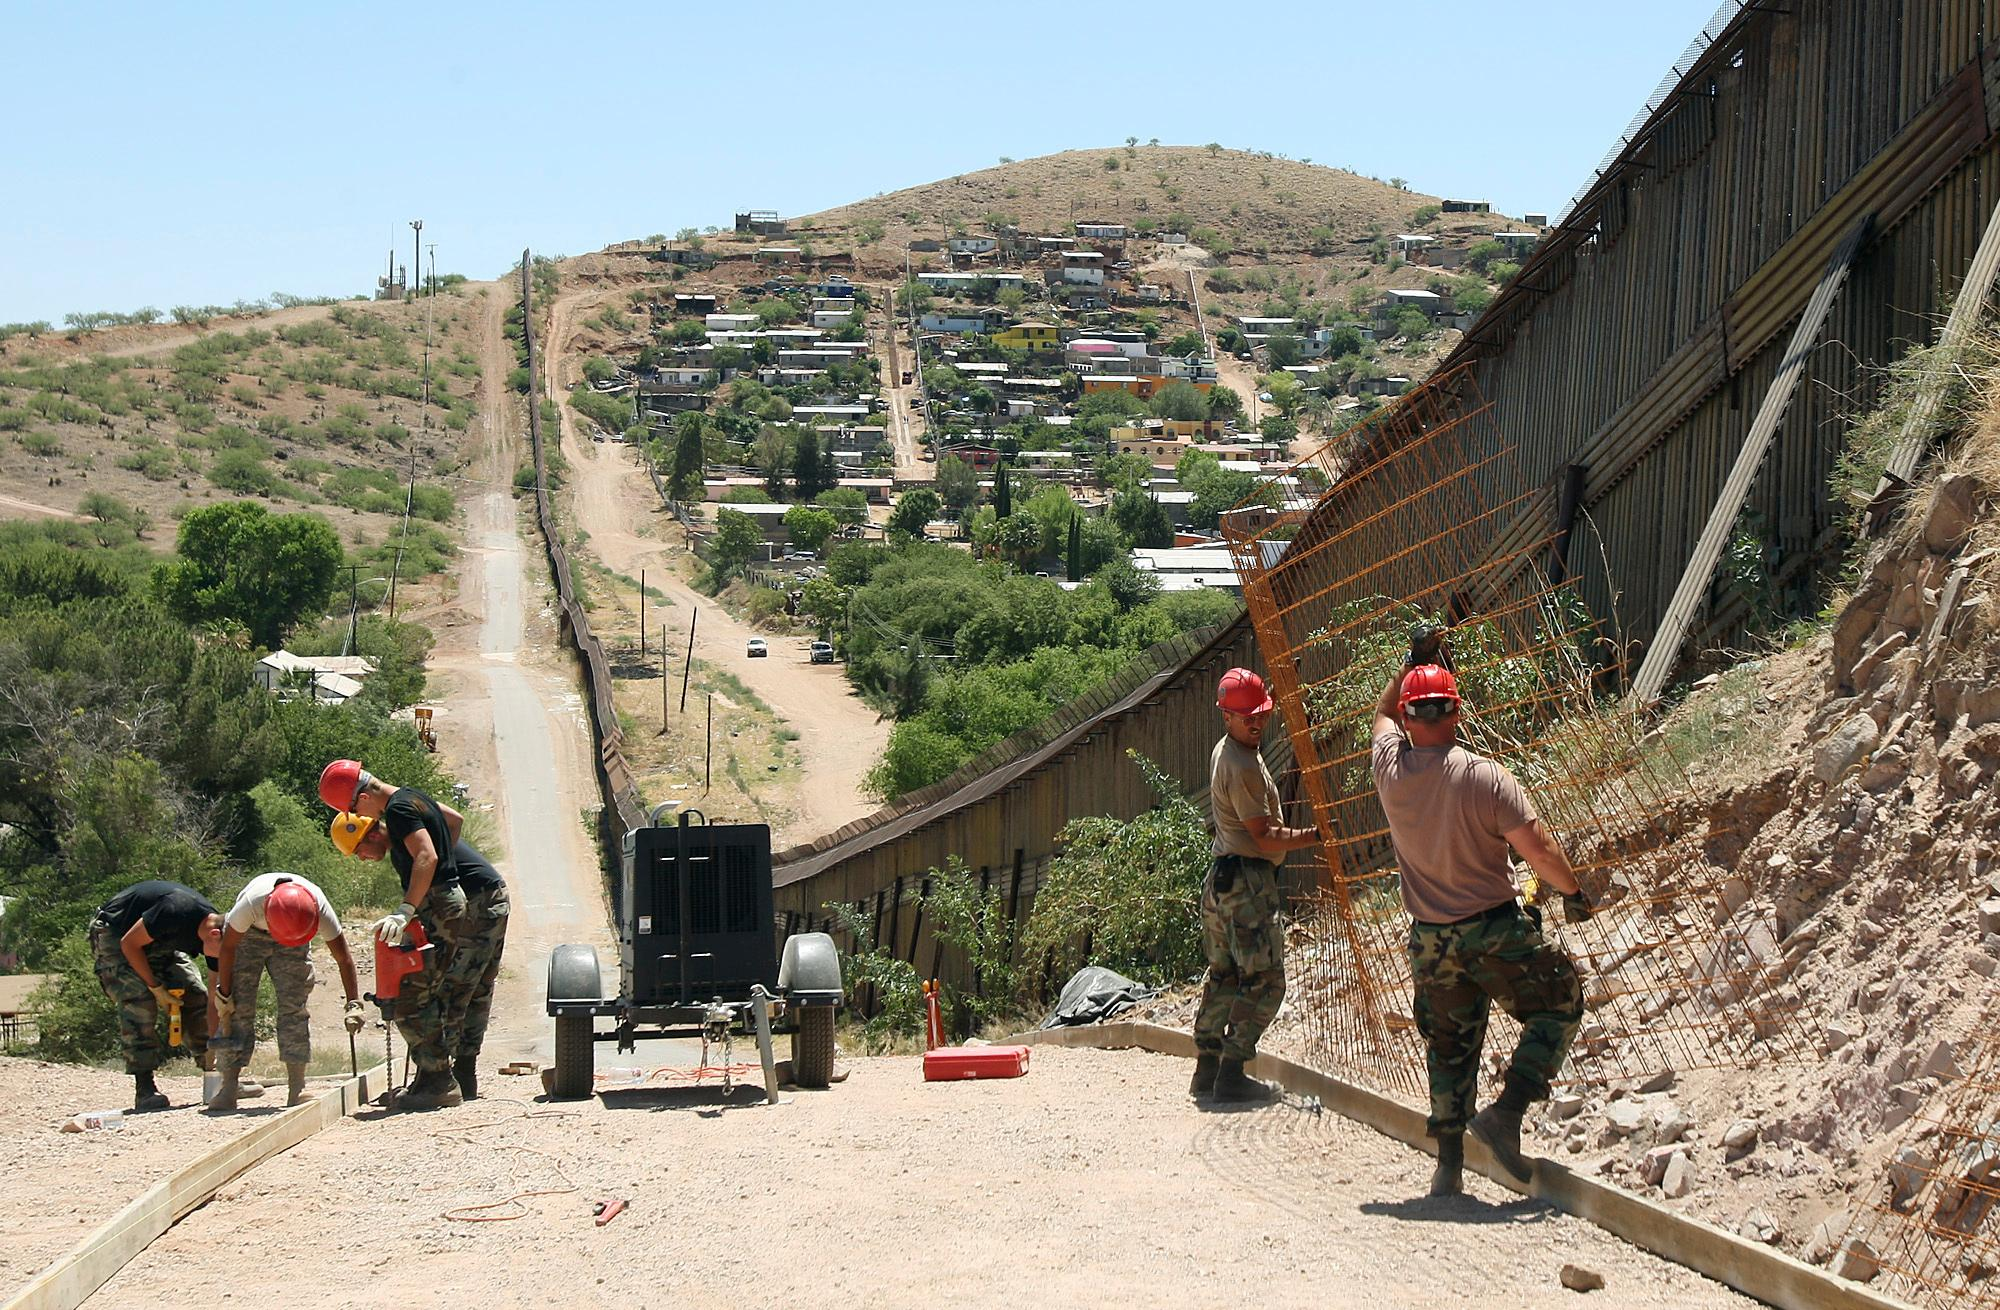 FILE - In this June 20, 2008 file photo, members of the 200th Red Horse Air National Guard Civil Engineering Squadron from Camp Perry in Ohio, including Tech Sgt. David Hughes, right, and Tech Sgt. William Bunker, second from right, work on building a road at the border in Nogales, Ariz. President Donald Trump said April 3, 2018, he wants to use the military to secure the U.S.-Mexico border until his promised border wall is built. The Department of Homeland Security and White House did not immediately respond to requests for comment. At the Pentagon, officials were struggling to answer questions about the plan, including rudimentary details on whether it would involve National Guard members, as similar programs in the past have done. But officials appeared to be considering a model similar to a 2006 operation in which former President George W. Bush deployed National Guard troops to the southern border in an effort to increase security and surveillance. (AP Photo/Ross D. Franklin, file)